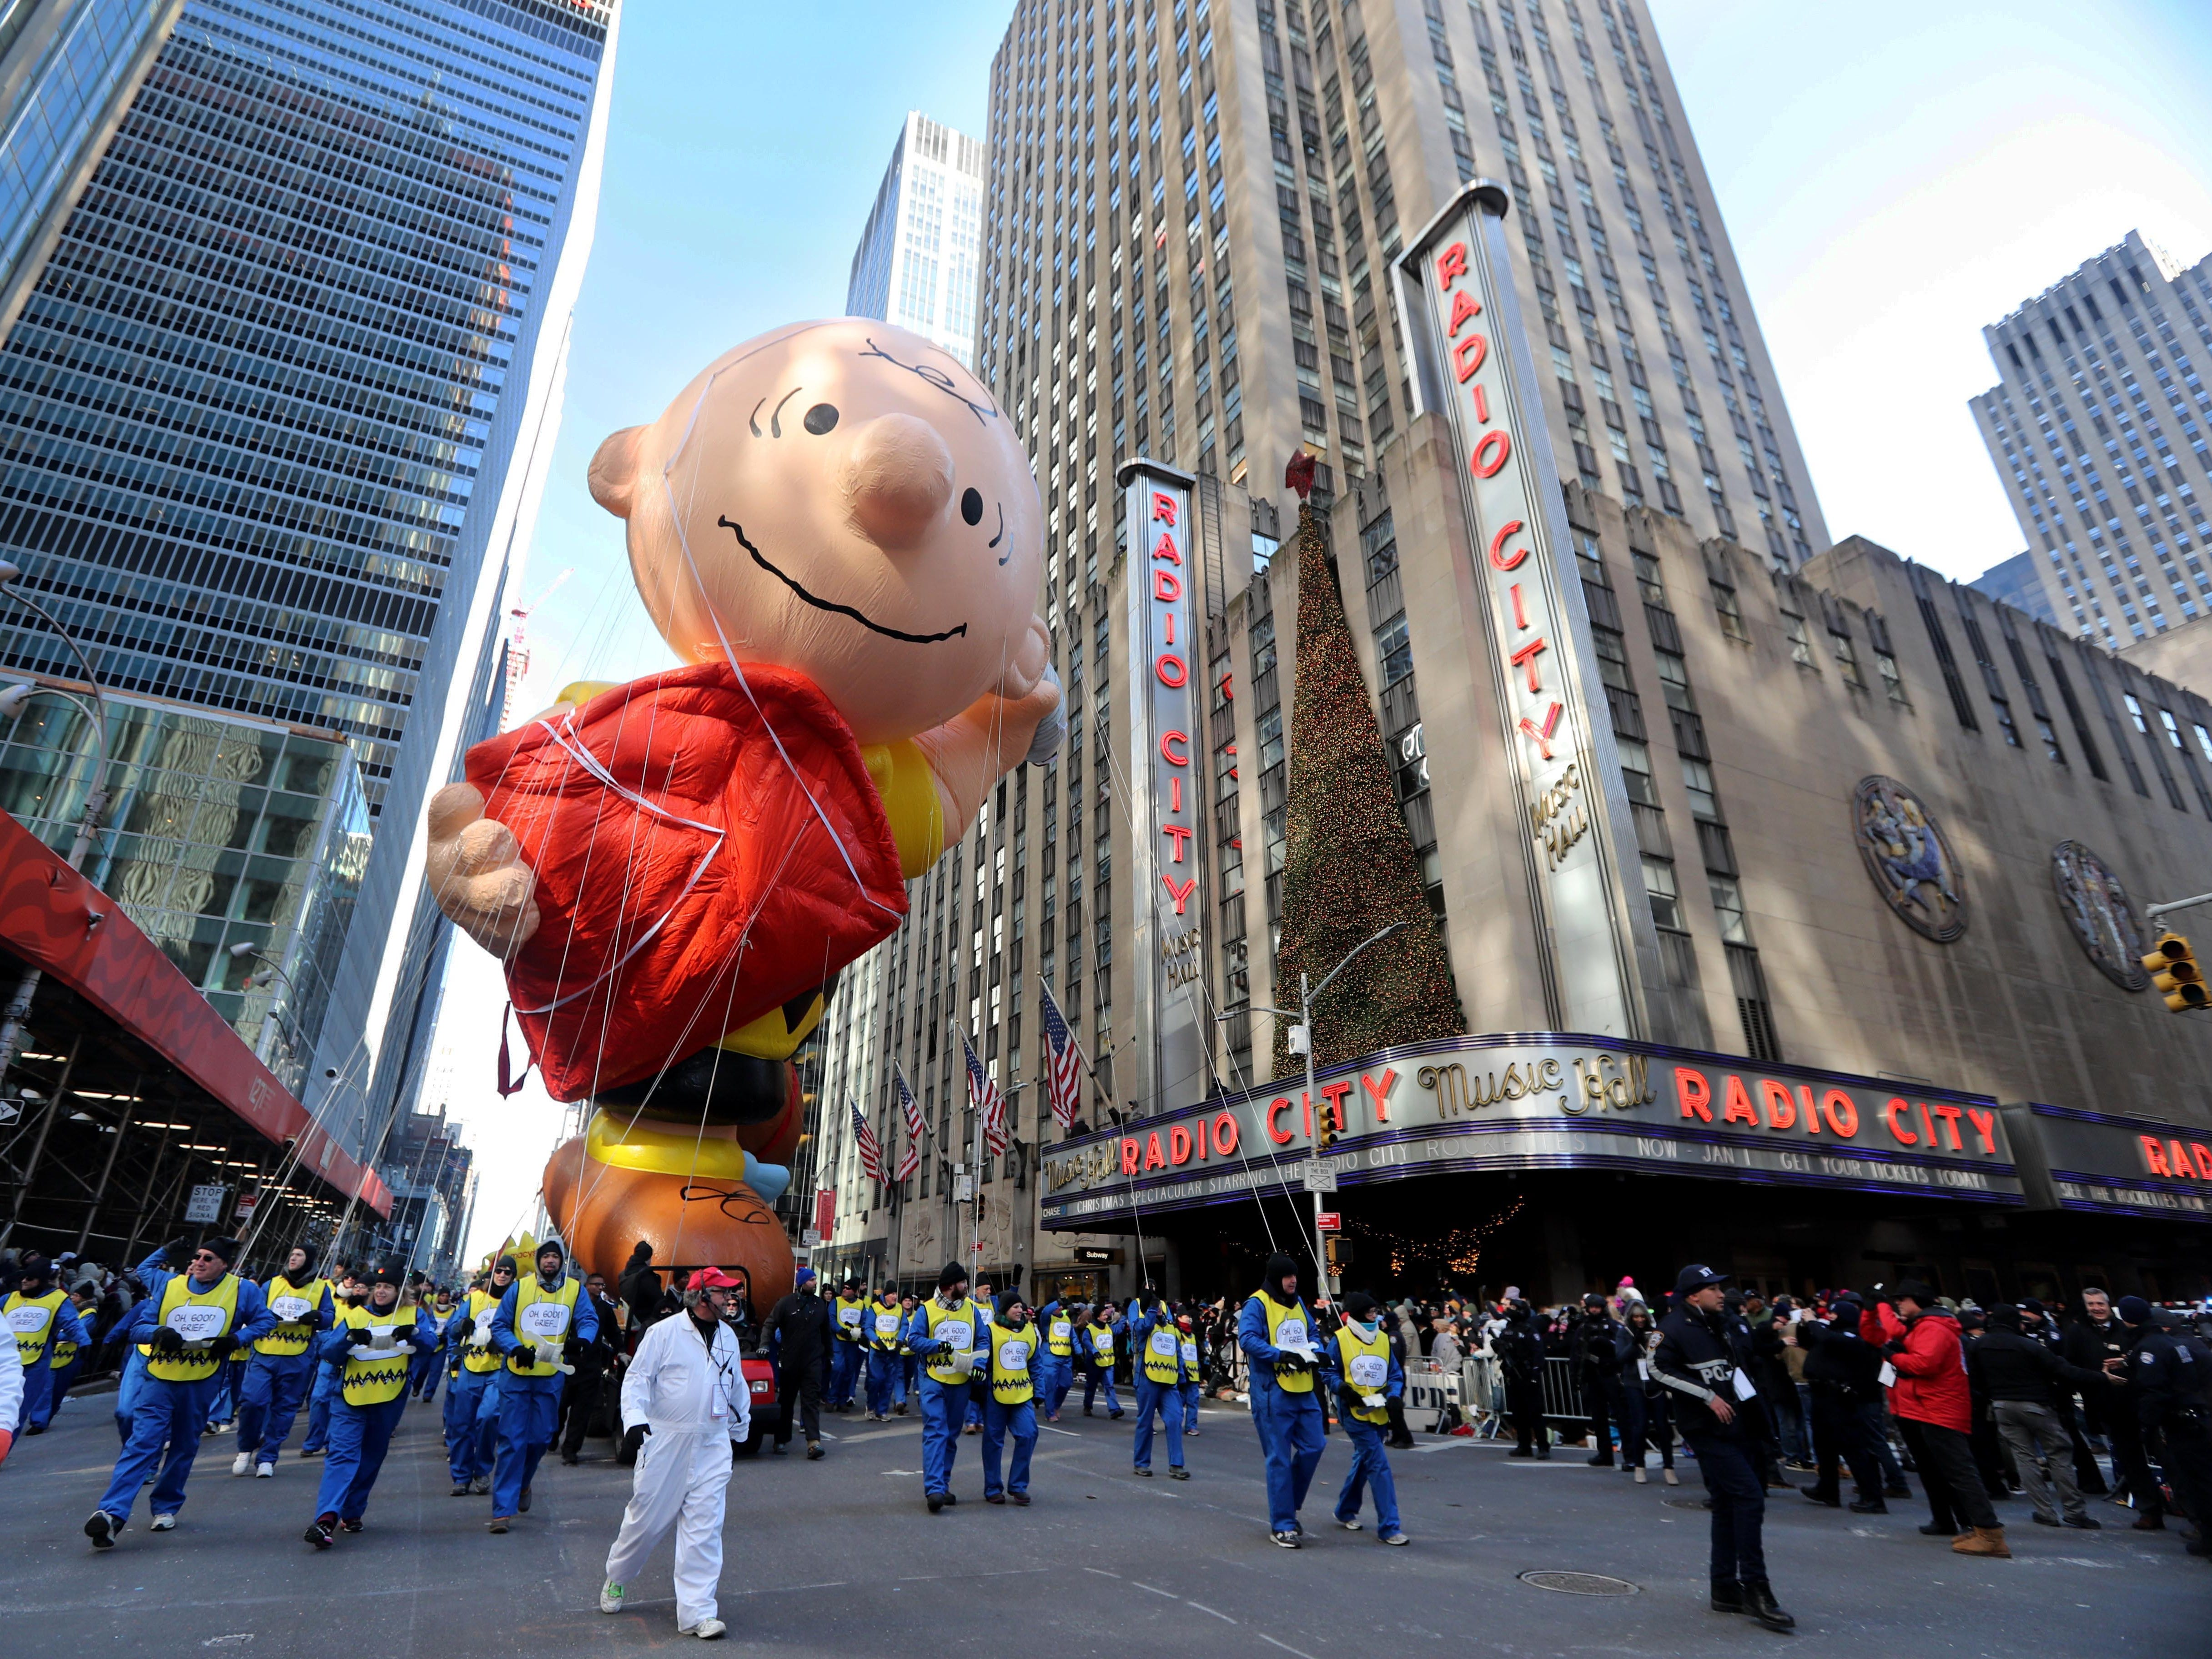 The Charlie Brown balloon makes its way down 6th Ave. in New York during the annual Macy's Thanksgiving Day Parade, Nov. 22, 2018.